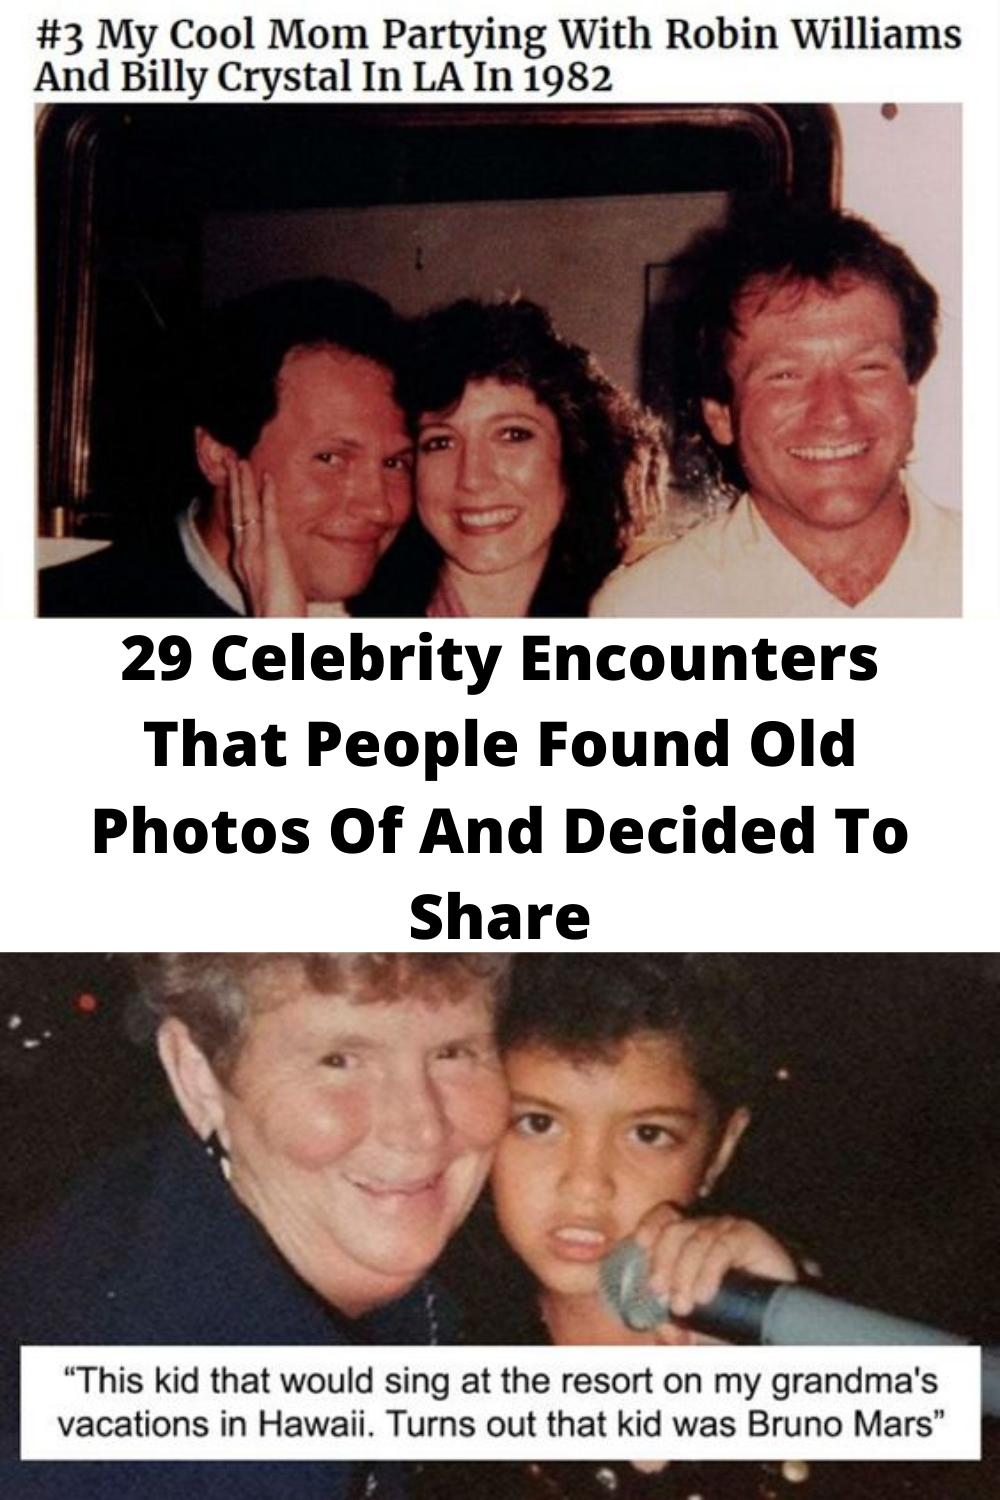 29 #Celebrity Encounters That #People #Found Old Photos Of And #Decided To #Share